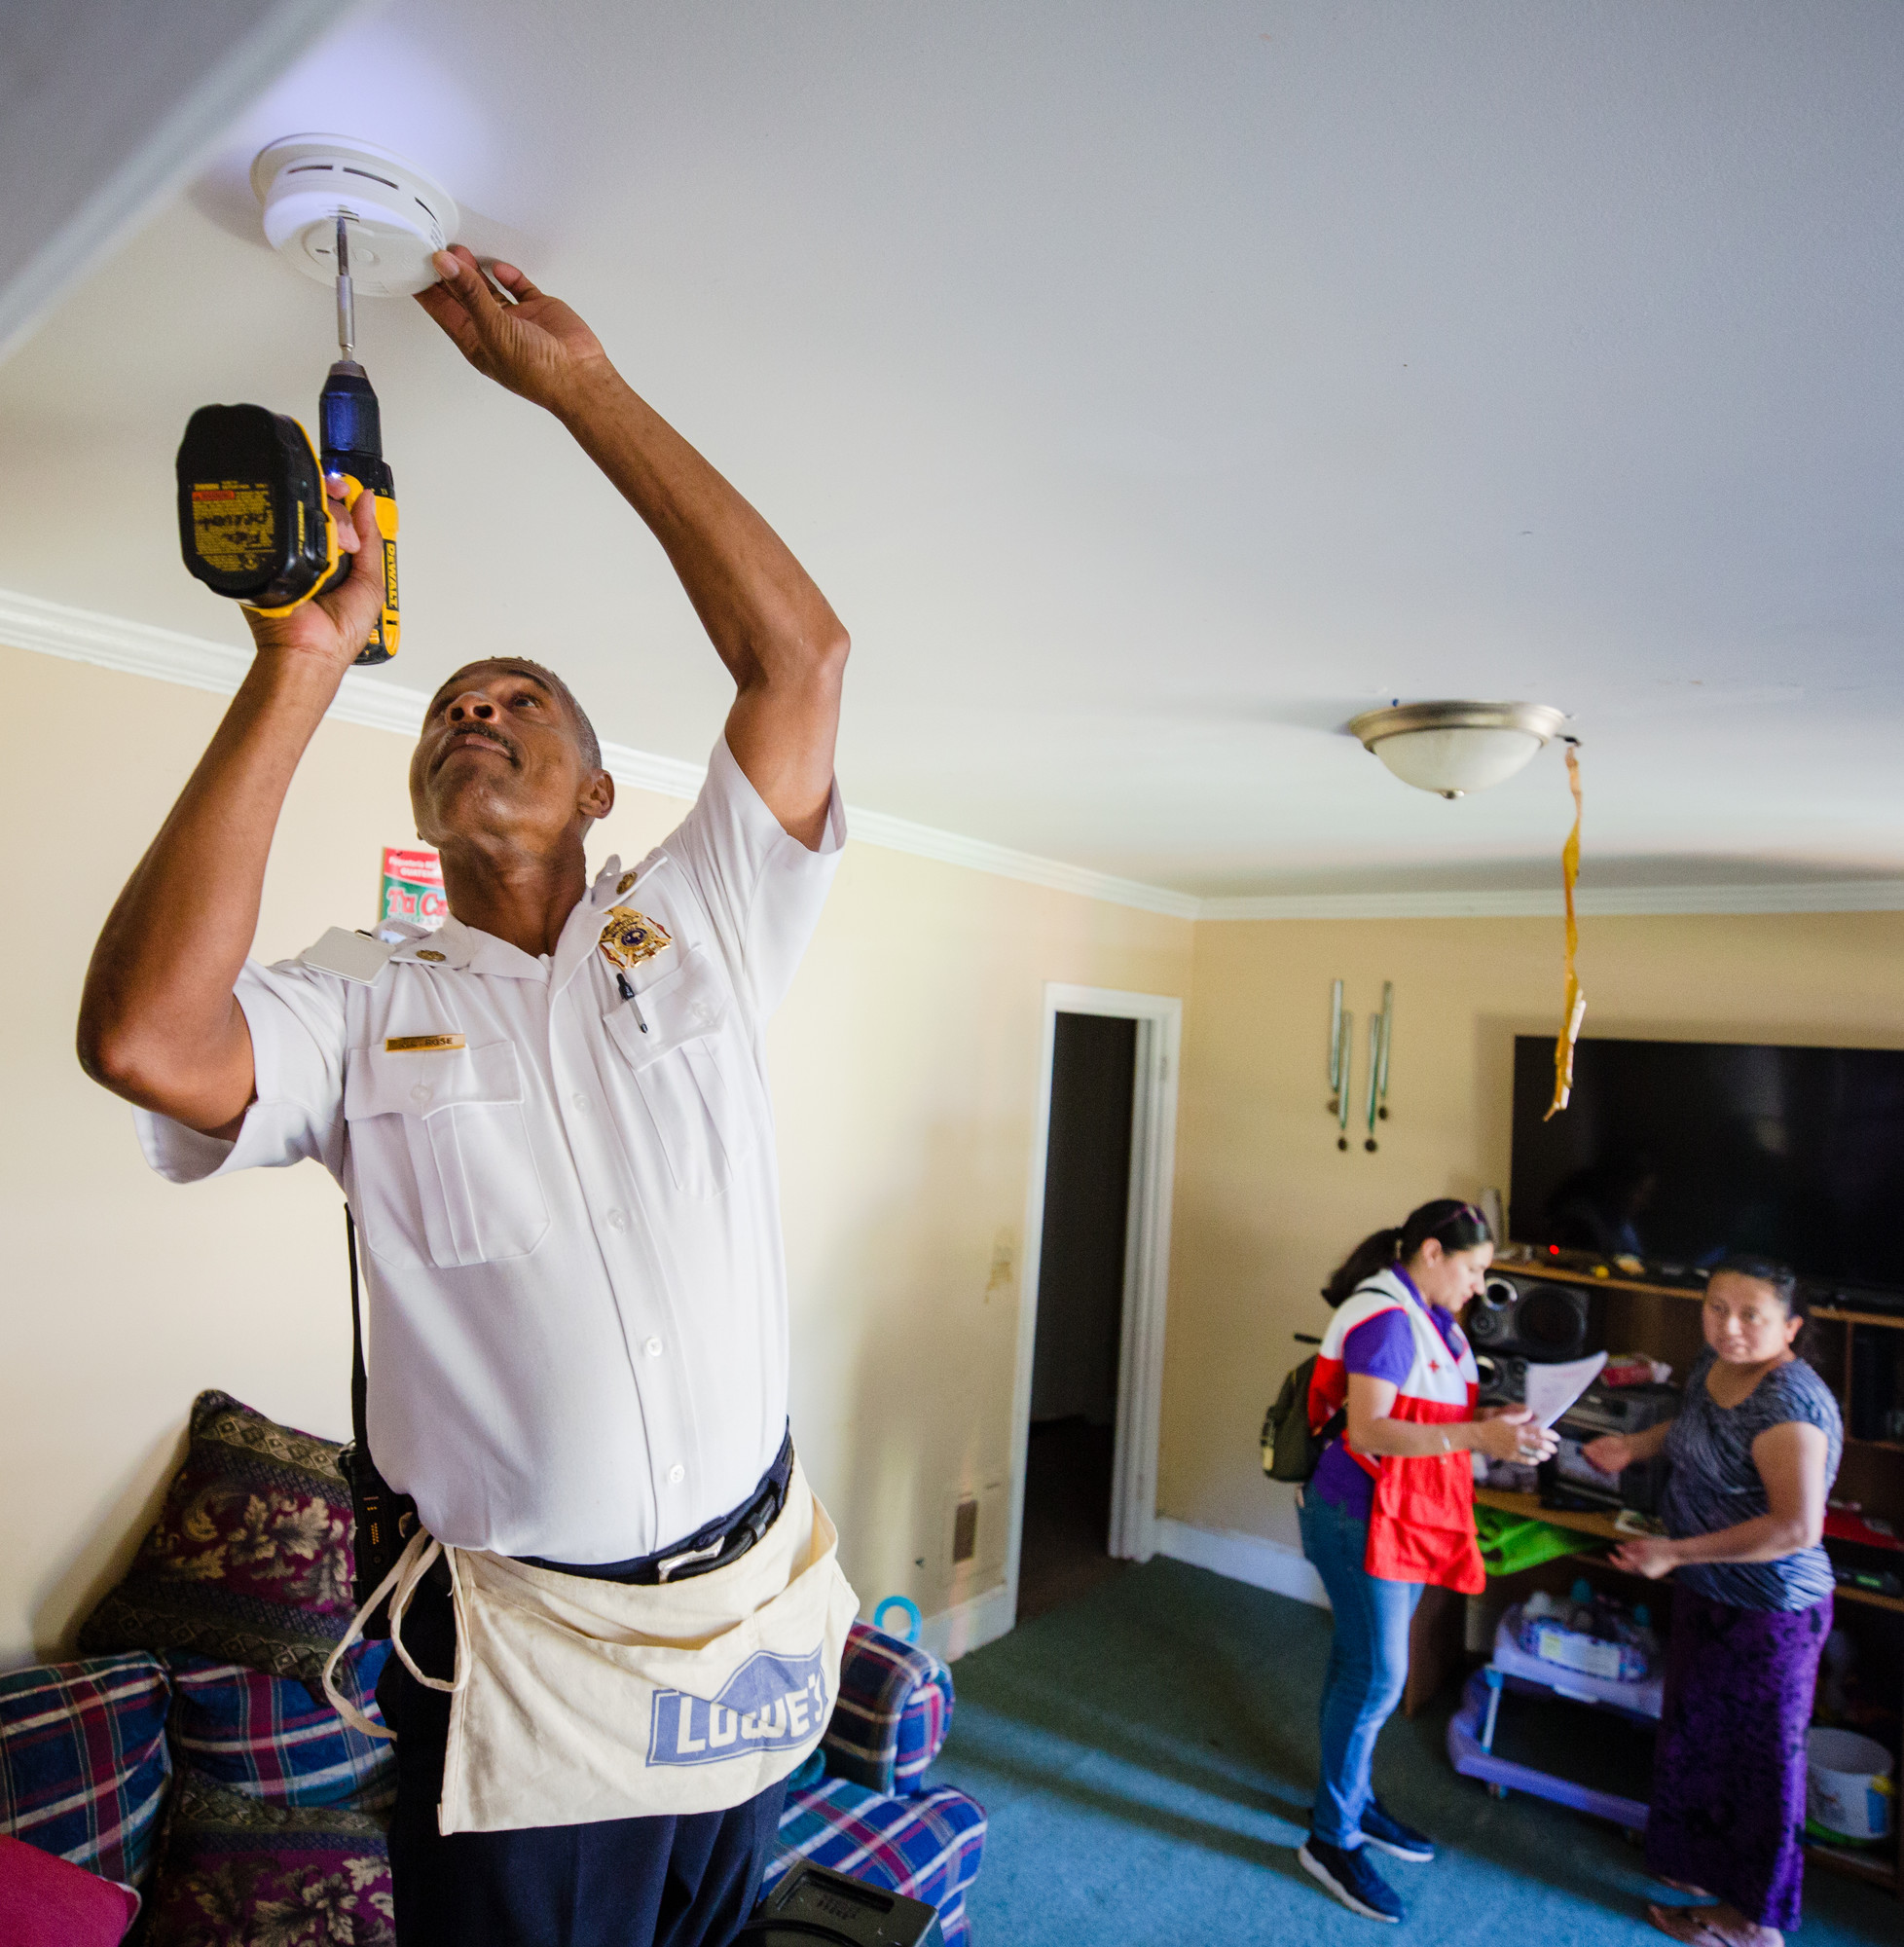 Sumter Fire Department Division Chief Johnnie Rose installs a smoke detector in a home near Crosswell Drive.